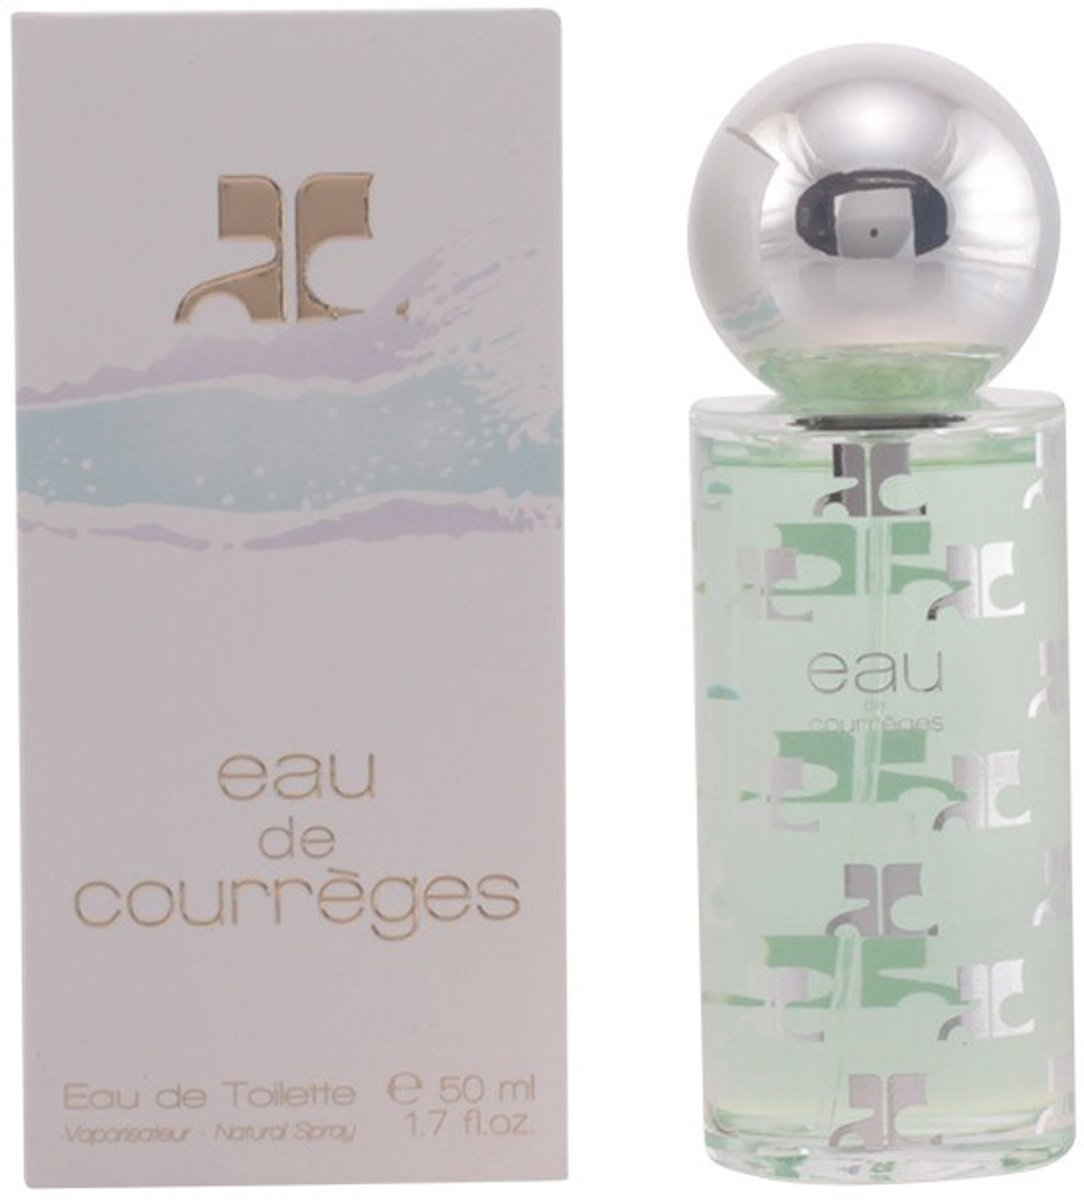 Courreges EAU DE COURREGES eau de toilette spray 50 ml